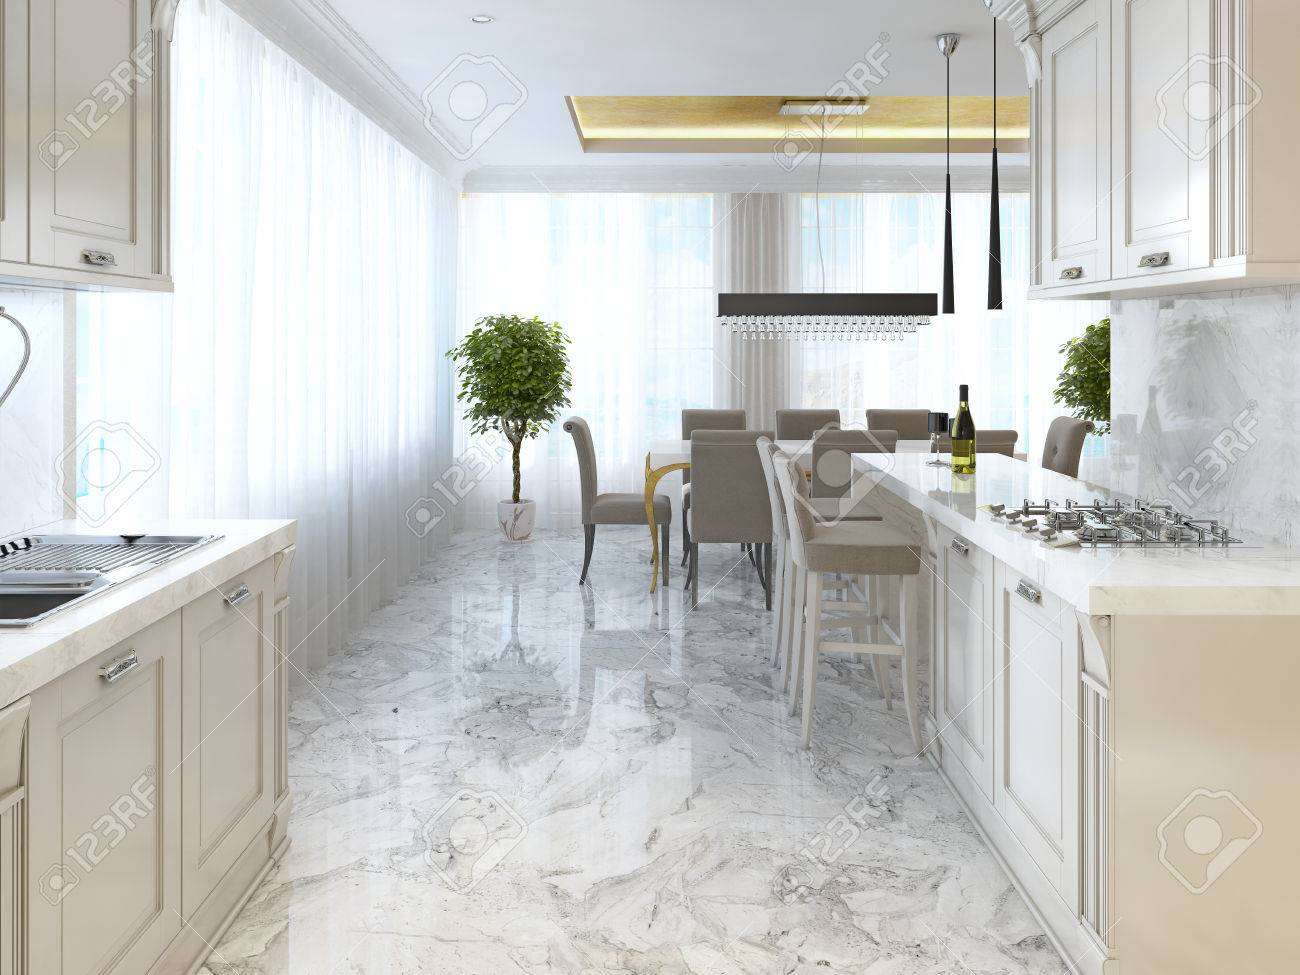 Luxury kitchen with opaline furniture in art Deco style. With..